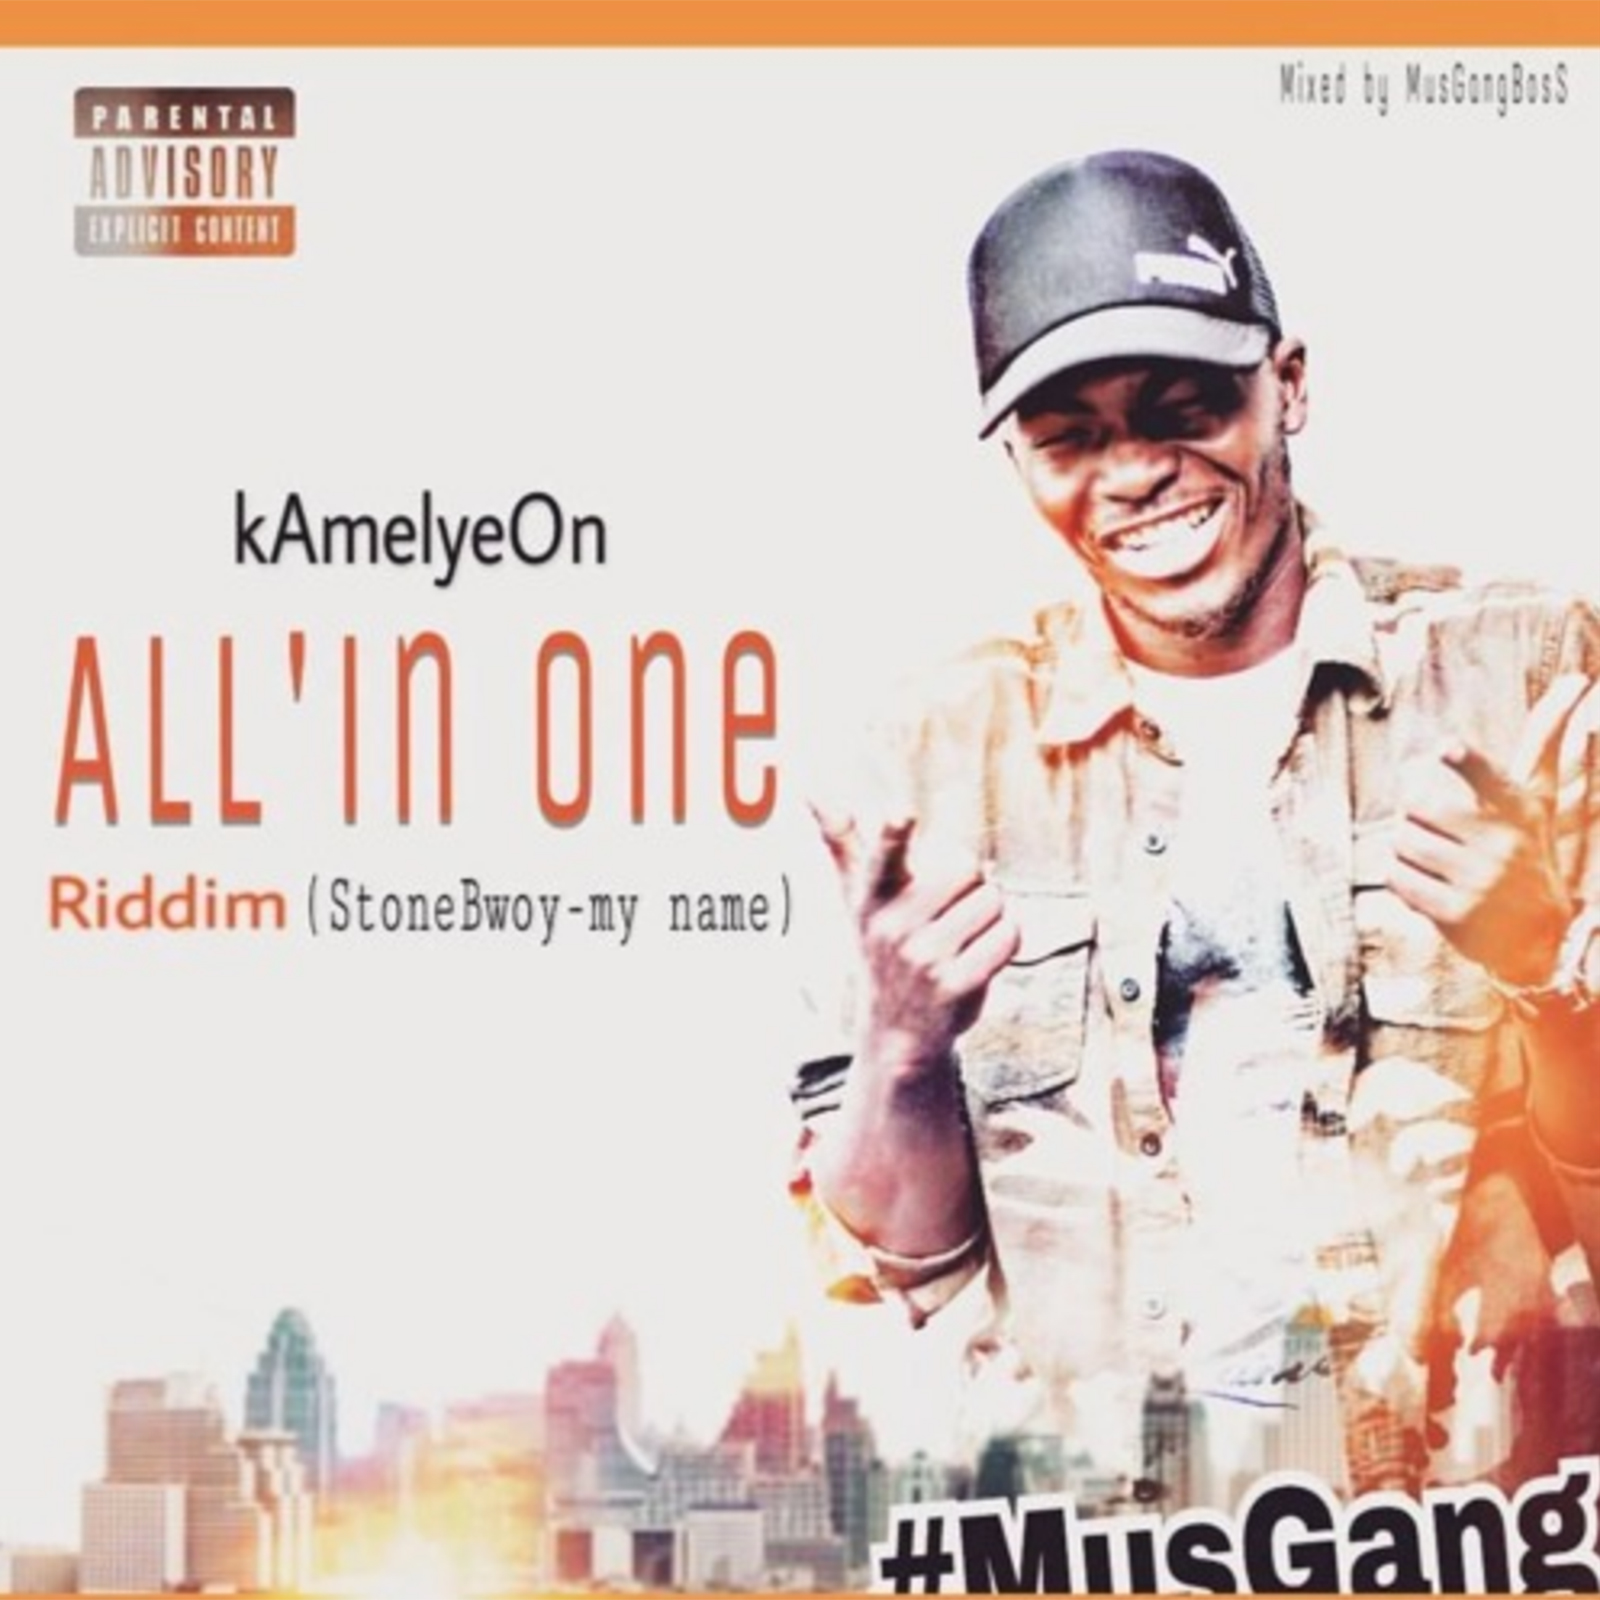 All' In One Riddim (Stonebwoy My Name cover) by Kamelyeon